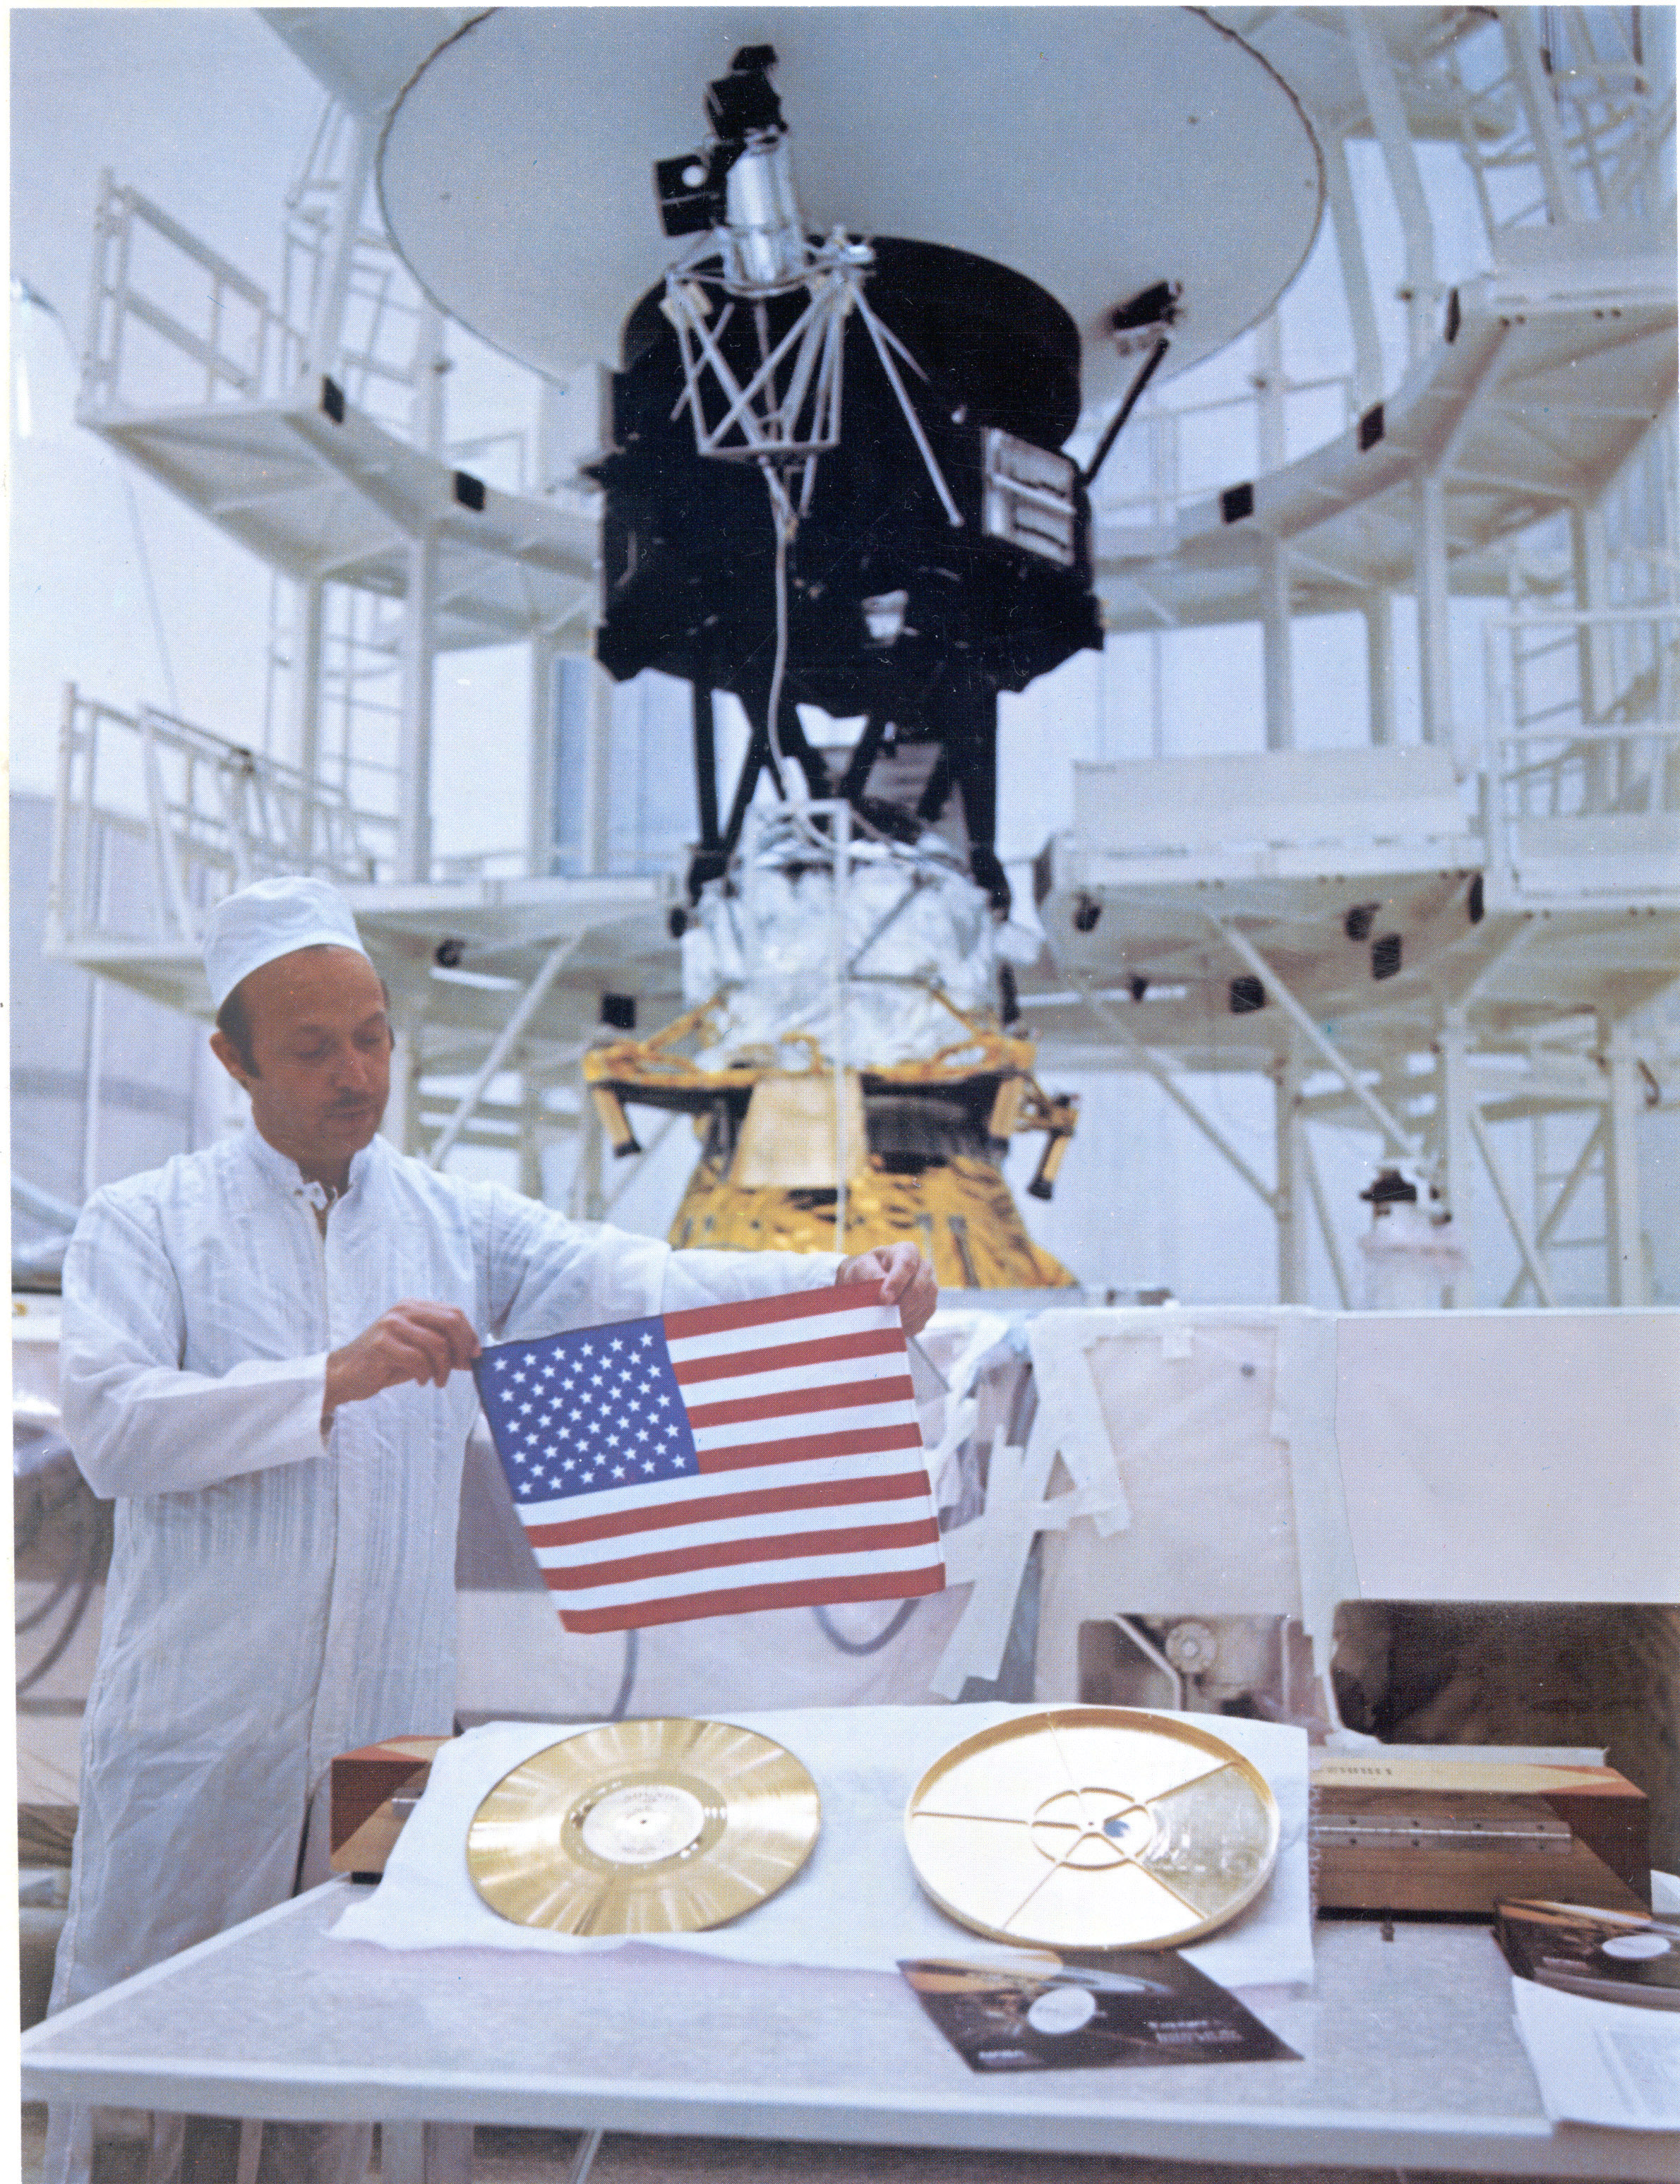 John Casani, August 4, 1977 — As NASA's two Voyager spacecraft travel out into deep space, they carry a small American flag and a Golden Record packed with pictures and sounds -- mementos of our home planet. This picture shows John Casani, Voyager project manager in 1977, holding a small Dacron flag that was folded and sewed into the thermal blankets of the Voyager spacecraft before they launched 36 years ago. Below him lie the Golden Record (left) and its cover (right). In the background stands Voyager 2 before it headed to the launch pad. The picture was taken at Cape Canaveral, Florida, on August 4, 1977.